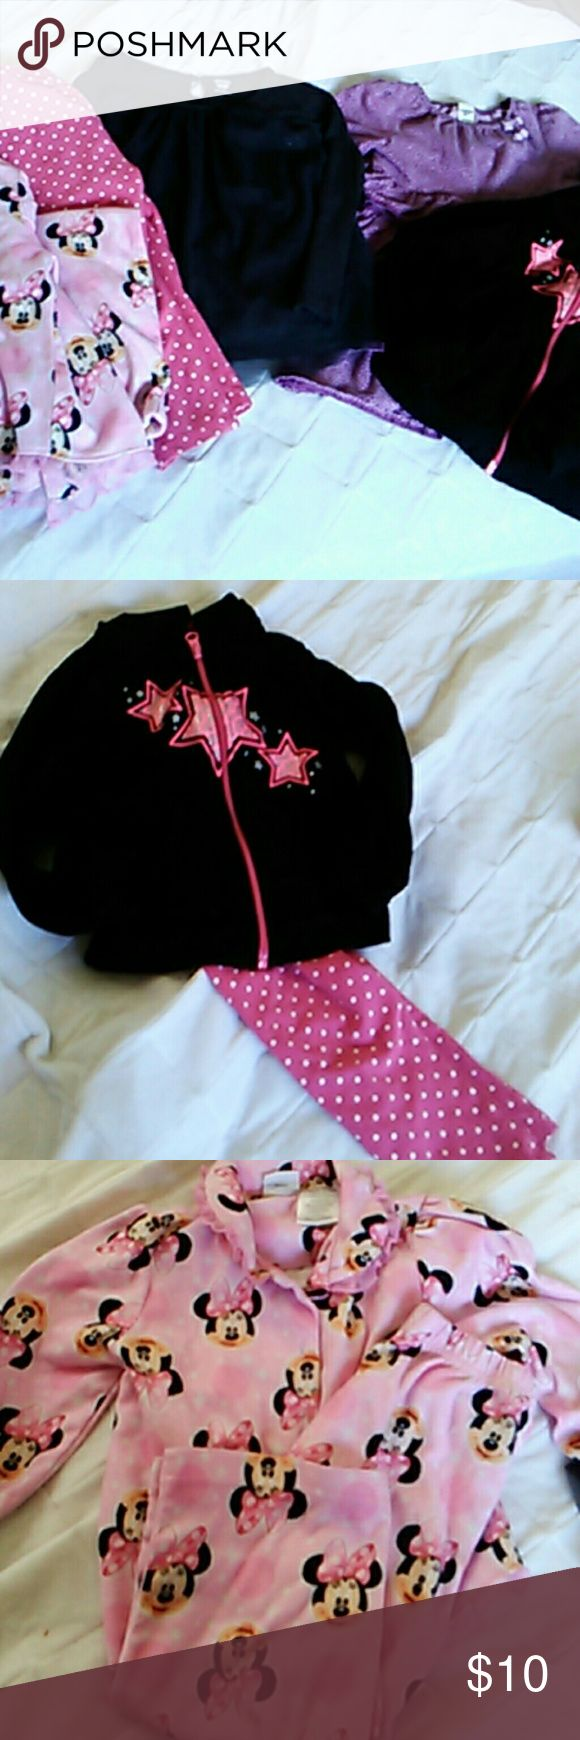 Girls Size 3 Fall and Winter Clothes Oh Josh purple polka dot dress, Minnie Mouse pajamas, pink polka dot pants, black and pink zip up jacket, red long sleeve with cute tie in the back, and Old Navy long sleeve shirt. Good used condition, no stains or tears, comes from a smoke and pet free home! Old Navy Bottoms Casual